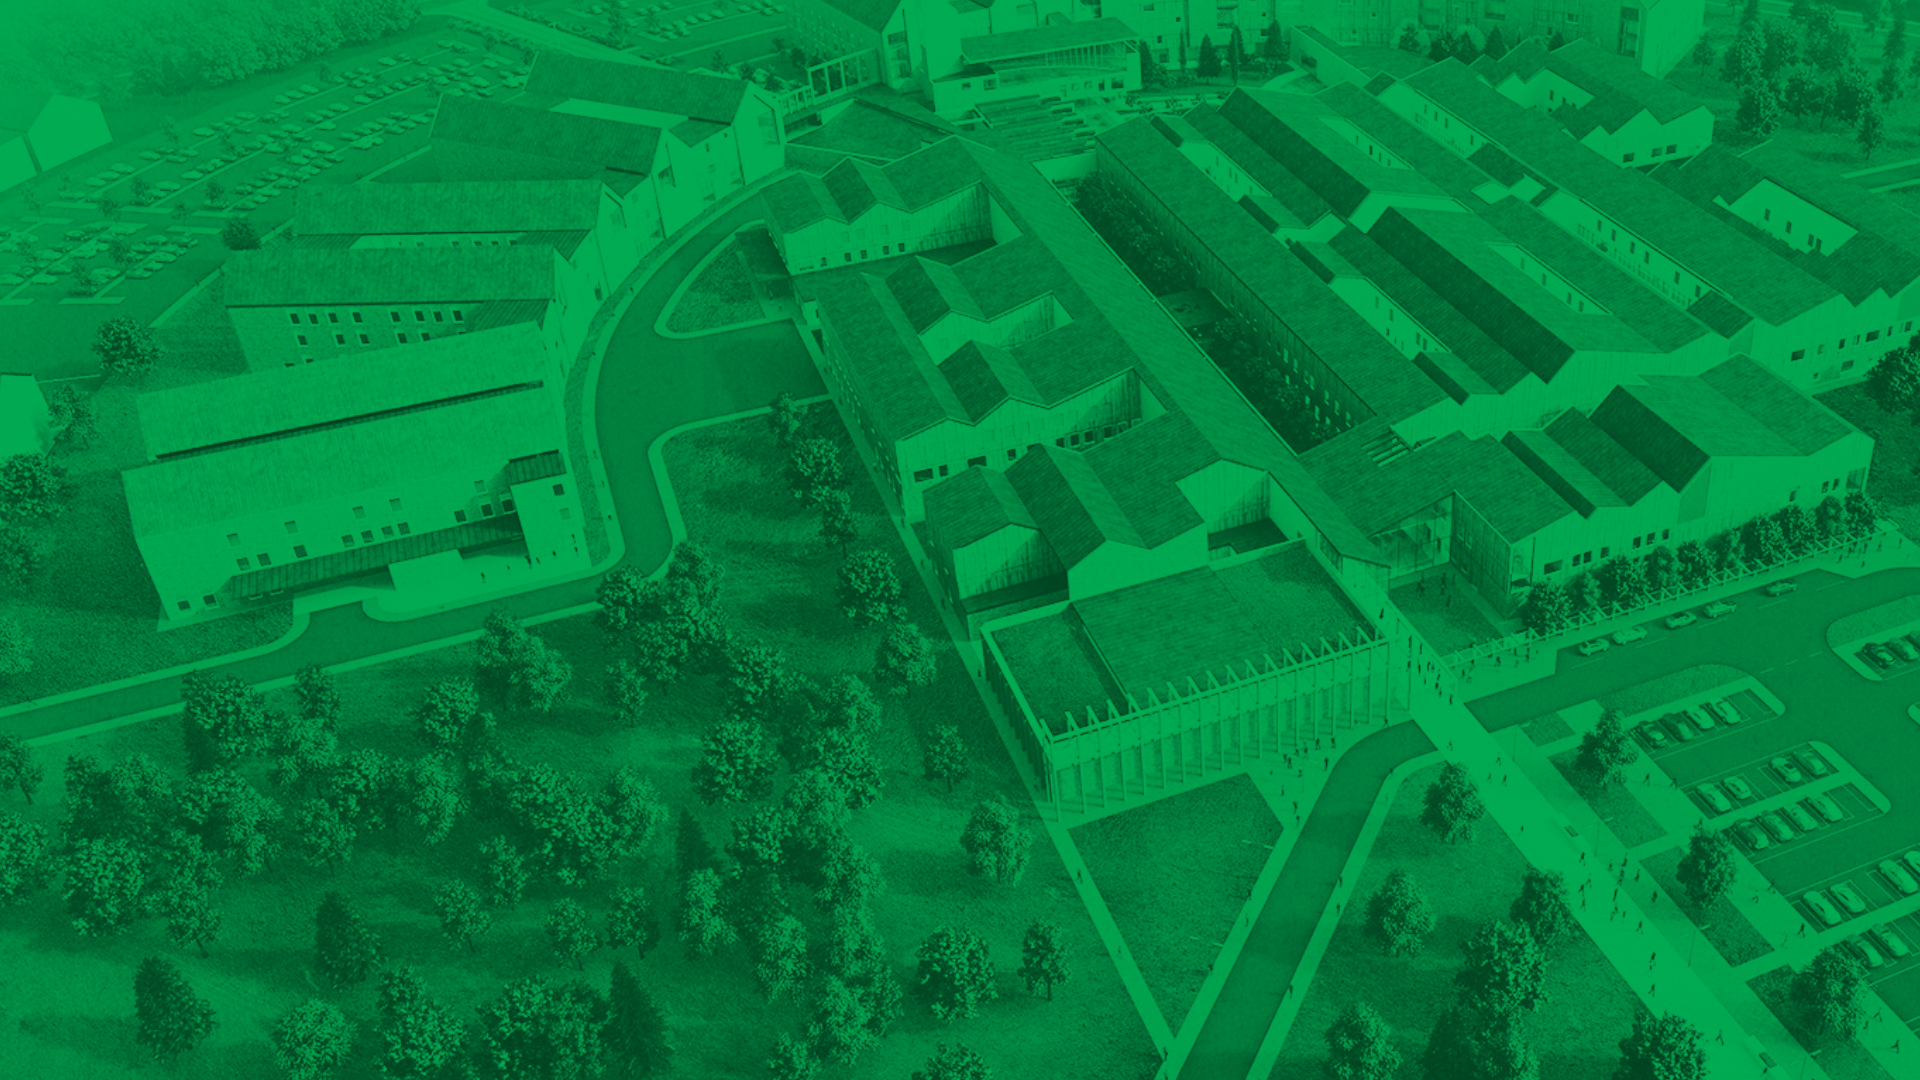 Birdseye view of hospital with green transparent overlay